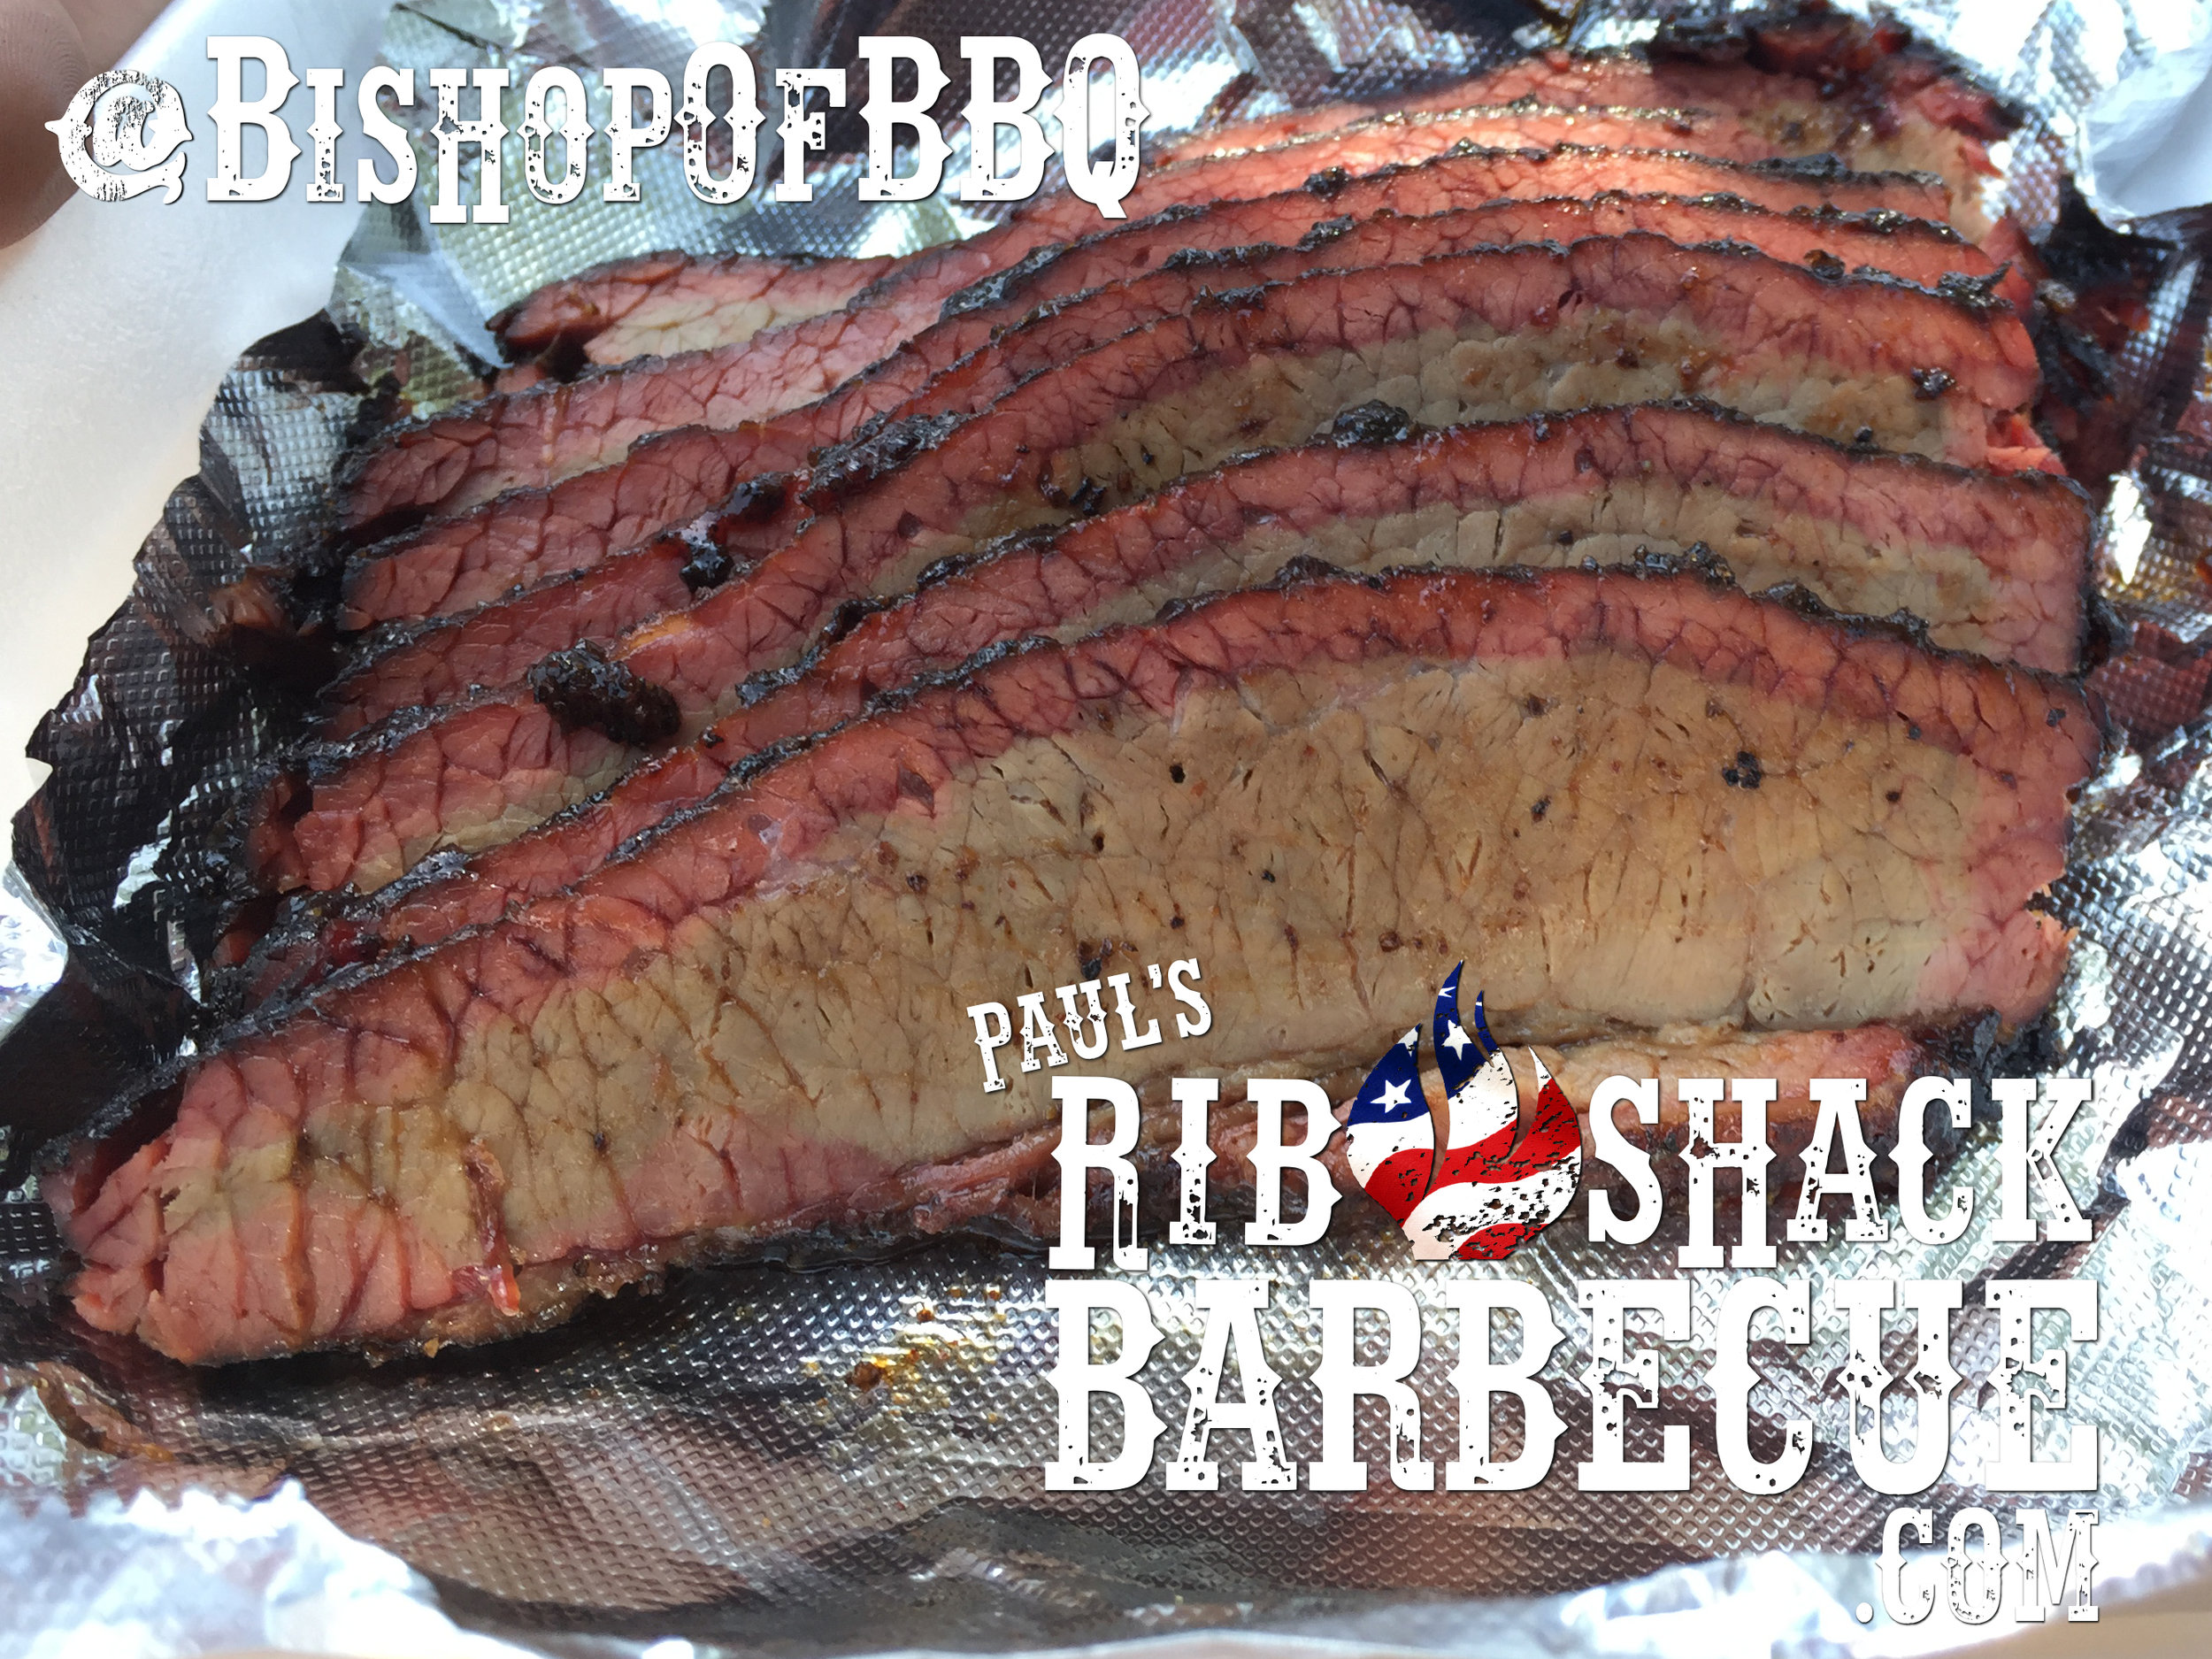 1-Pretty Brisket - IMG_2375-90 degrees.jpg